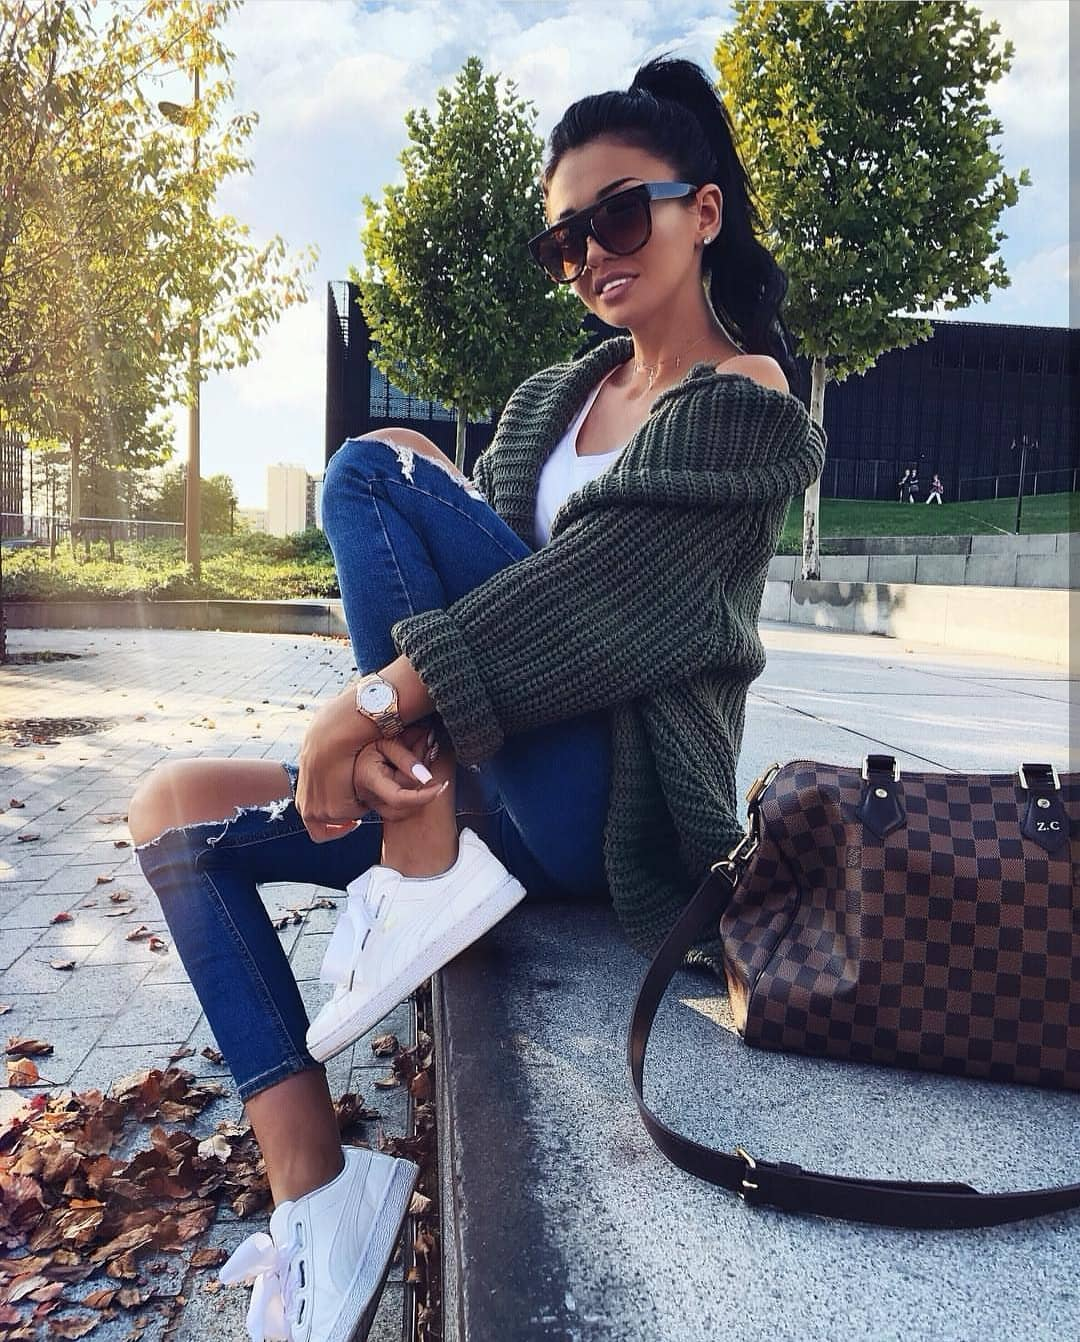 Green Oversized Cardigan With White Top, Ripped Blue Jeans And White Kicks 2020